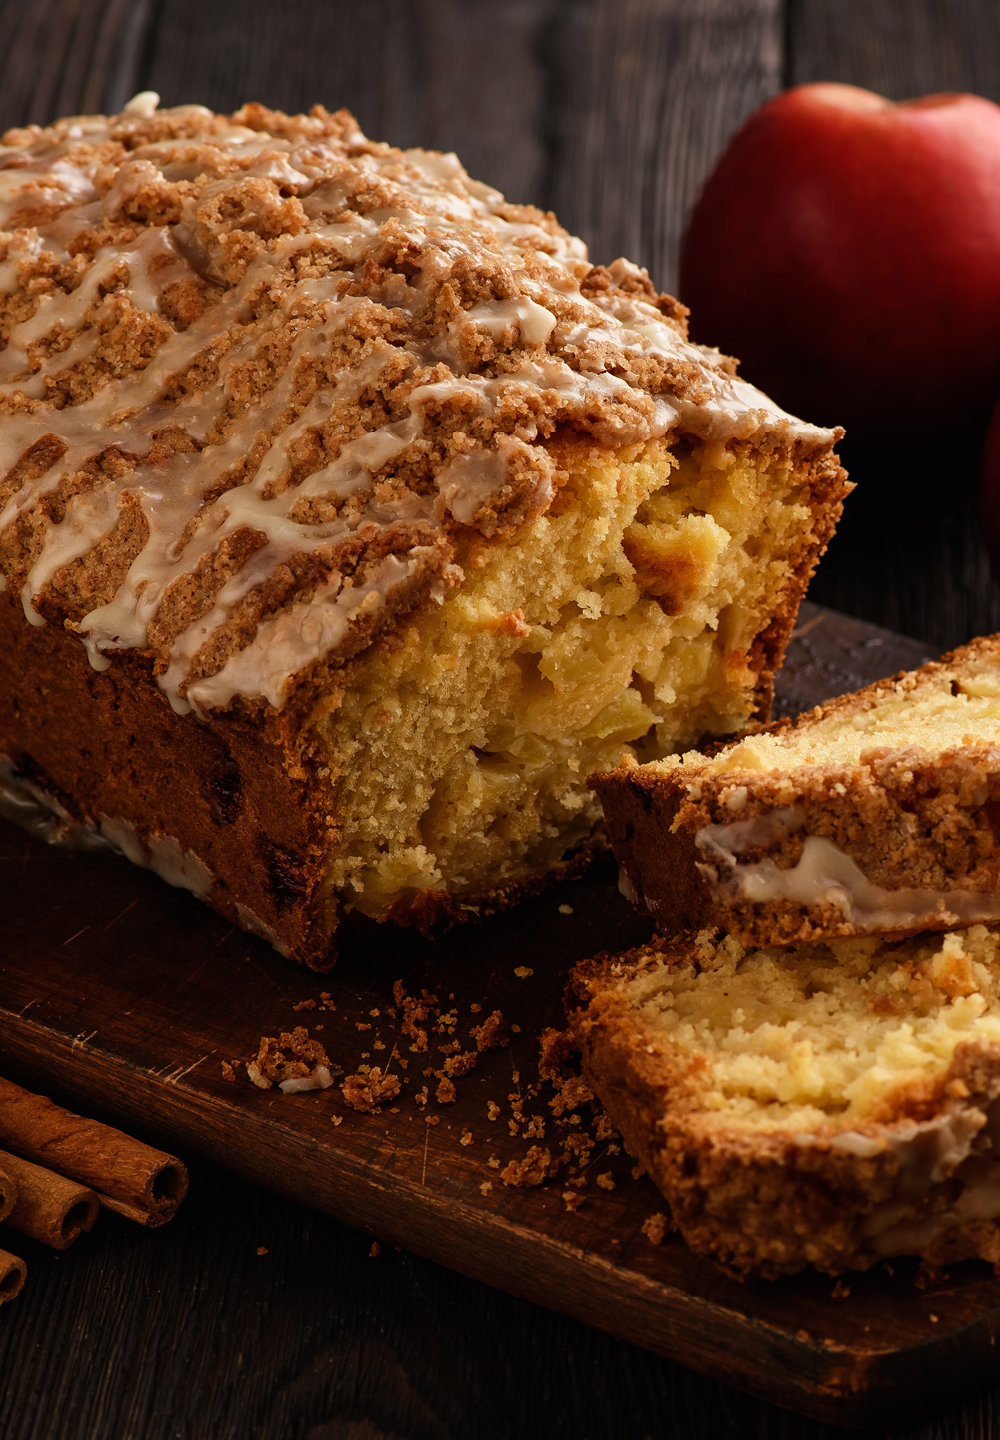 Apple & Cinnamon Bread